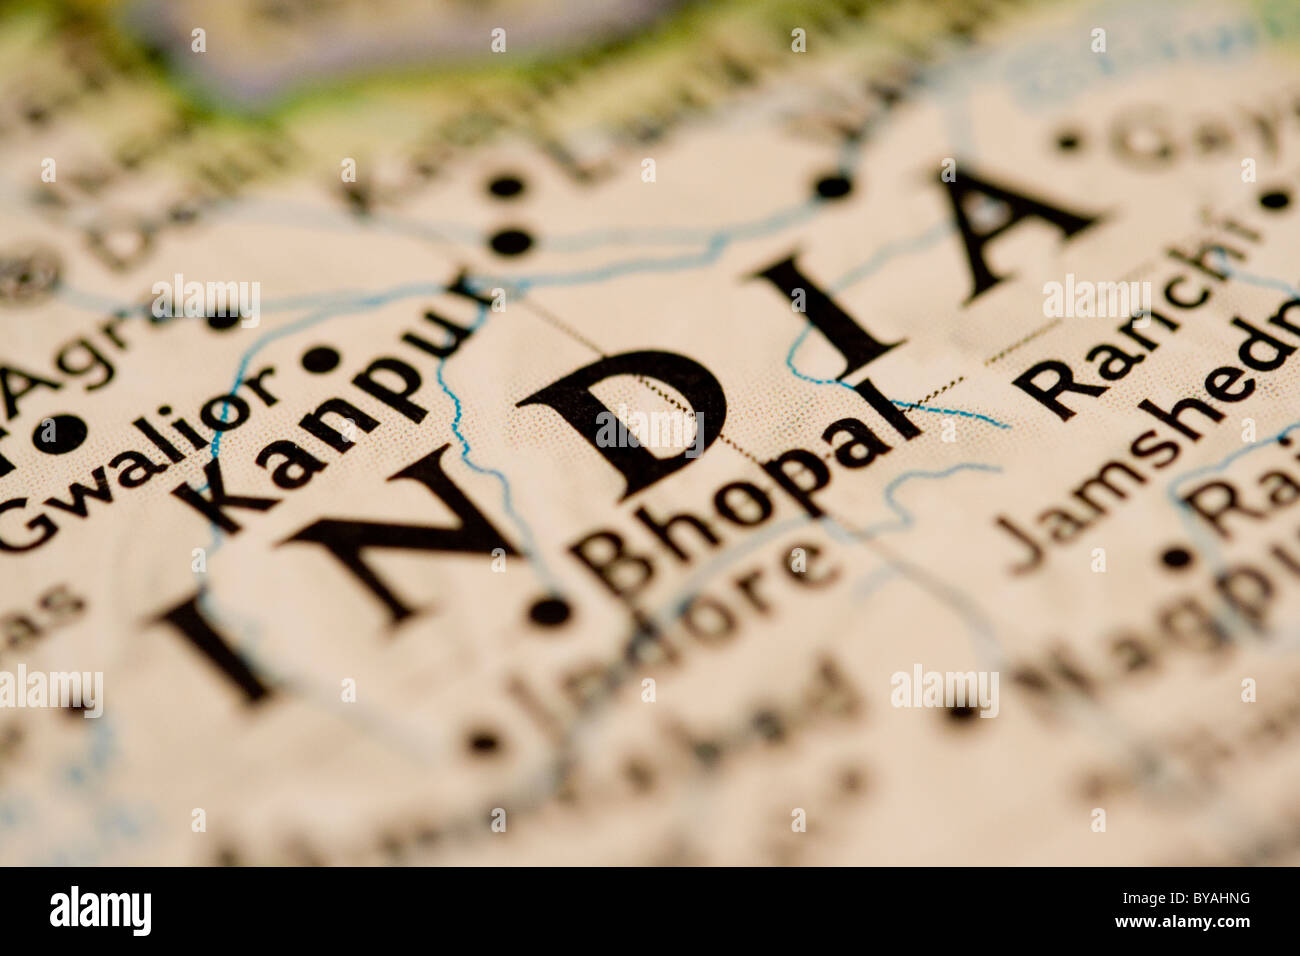 India on the amp. - Stock Image